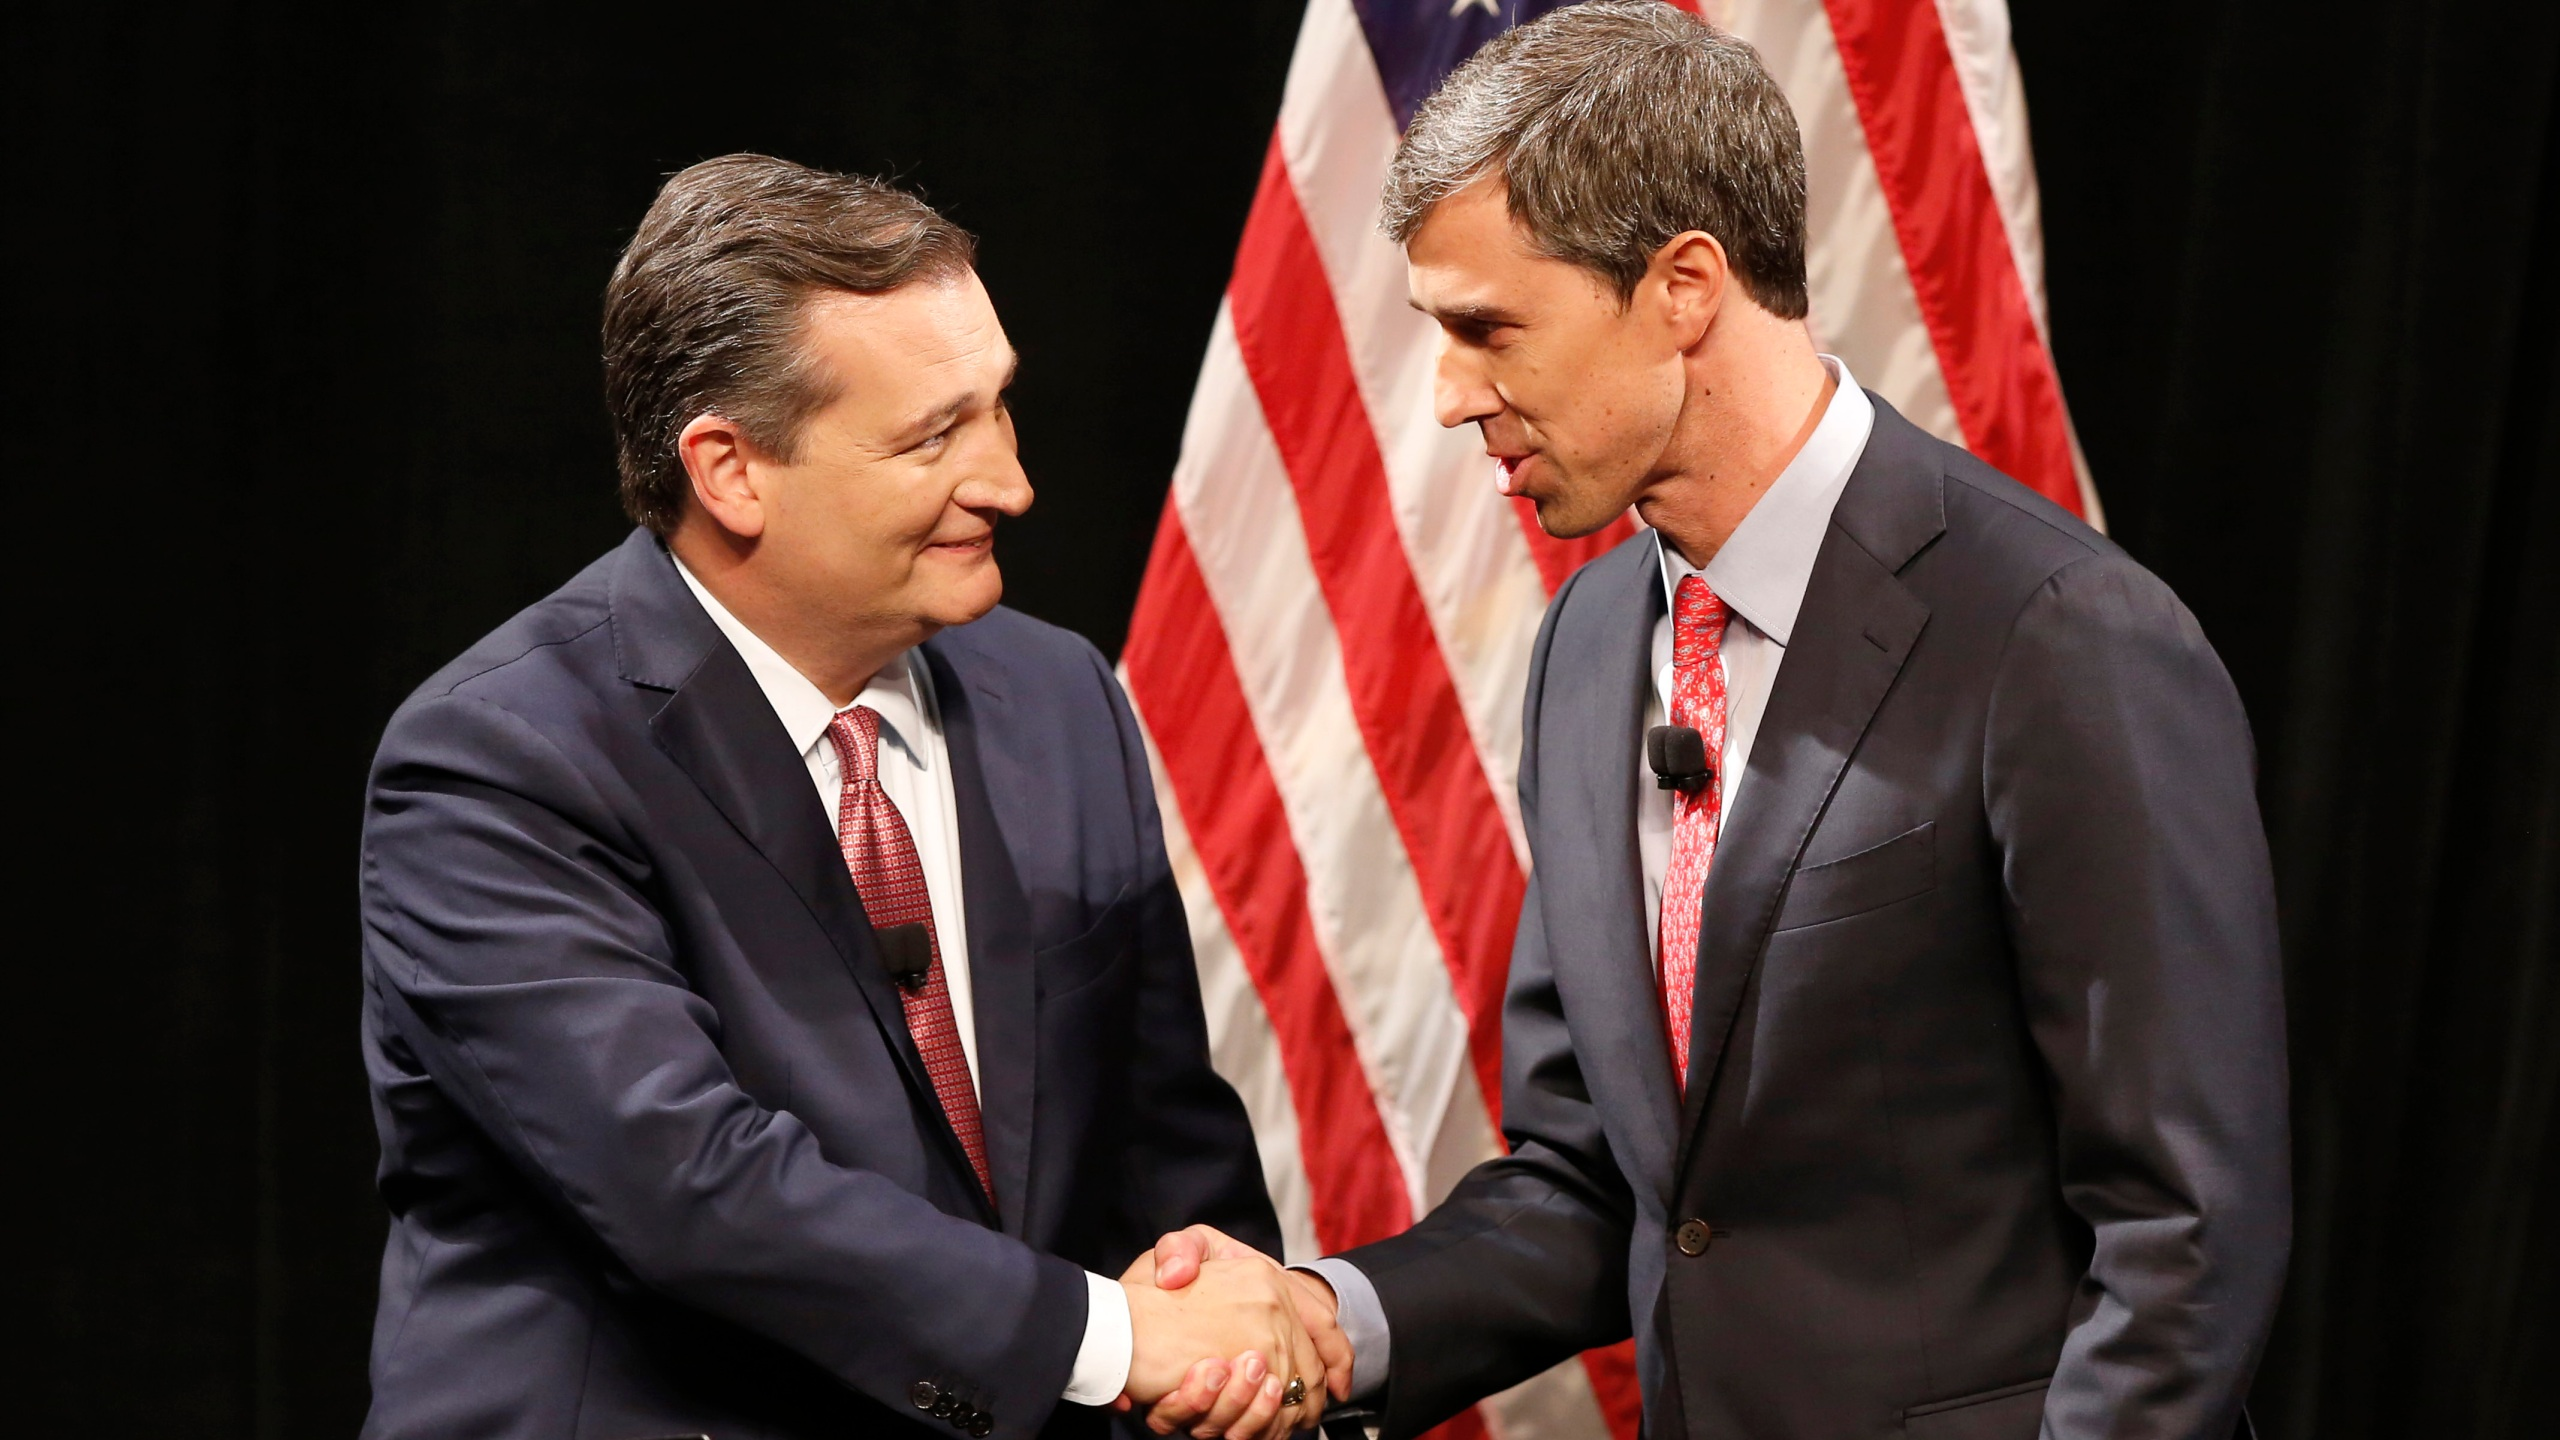 Ted Cruz and Beto O'Rourke at the debate